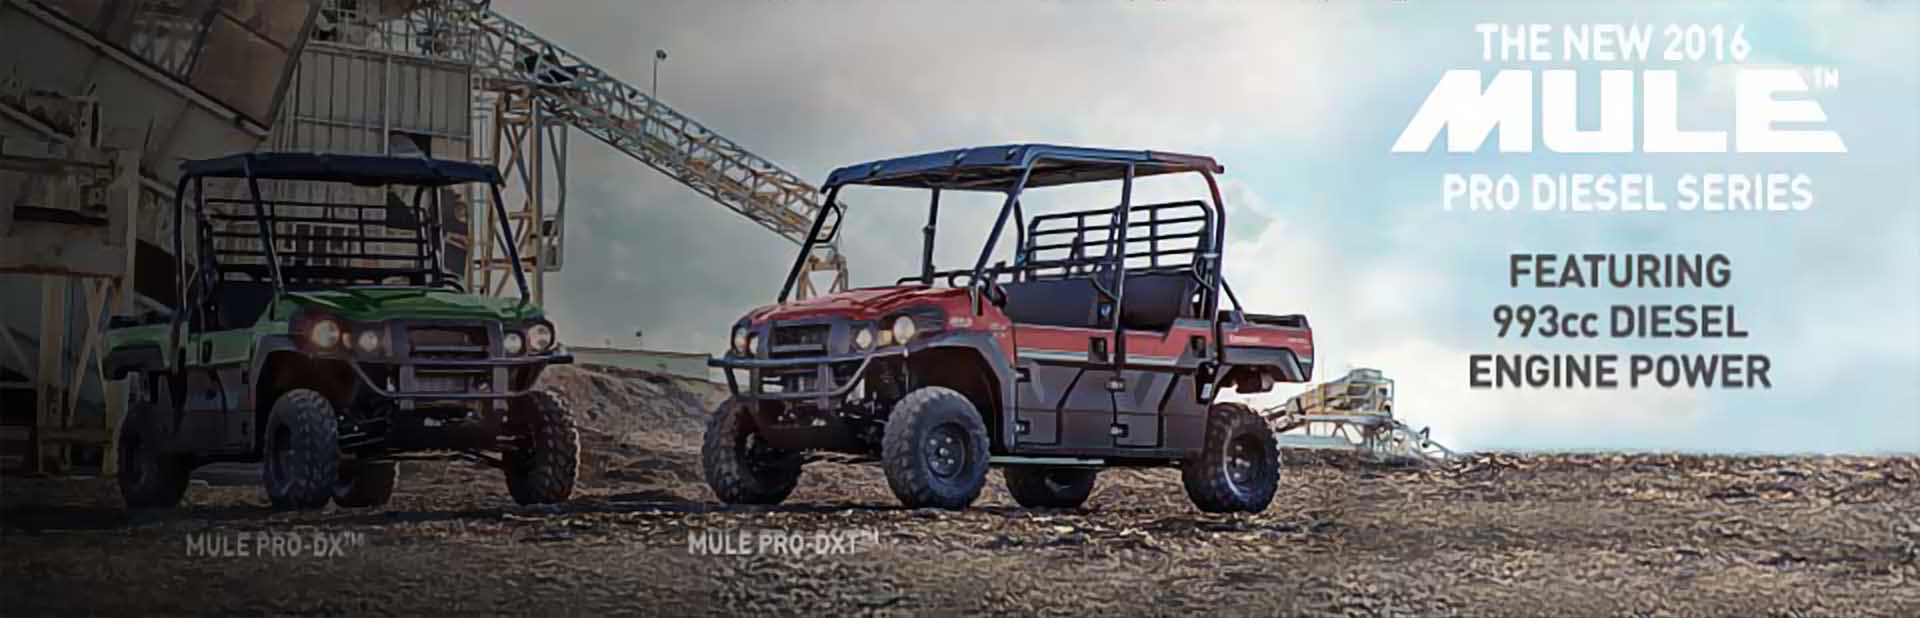 2016 Mule Pro Diesel: Click here to view the model.